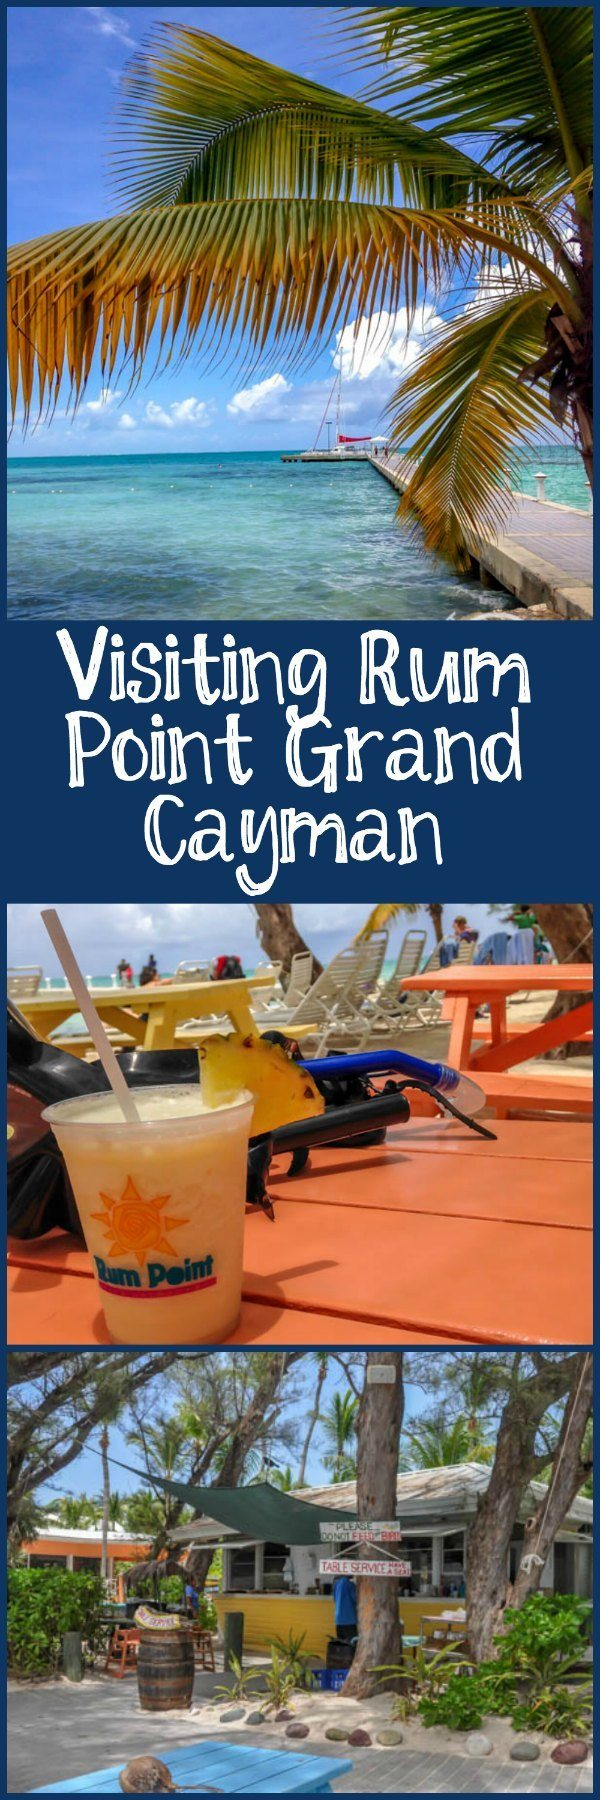 Visiting Rum Point Grand Cayman, a beach offering restaurants, snorkeling, water sport rentals, and more.